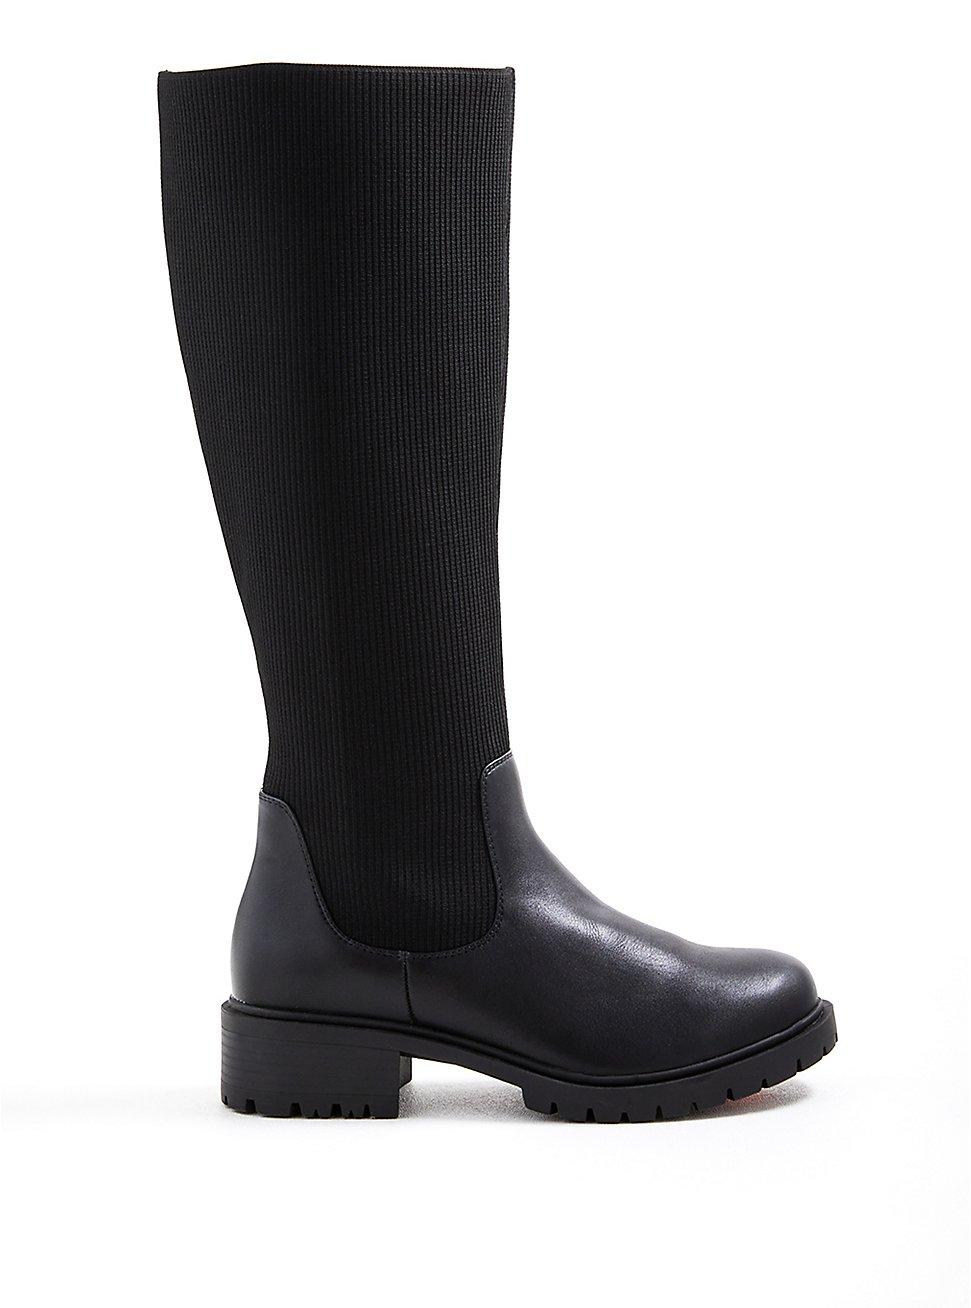 Plus Size Stretch Ribbed Knee Boot - Black Faux Leather (WW), BLACK, hi-res